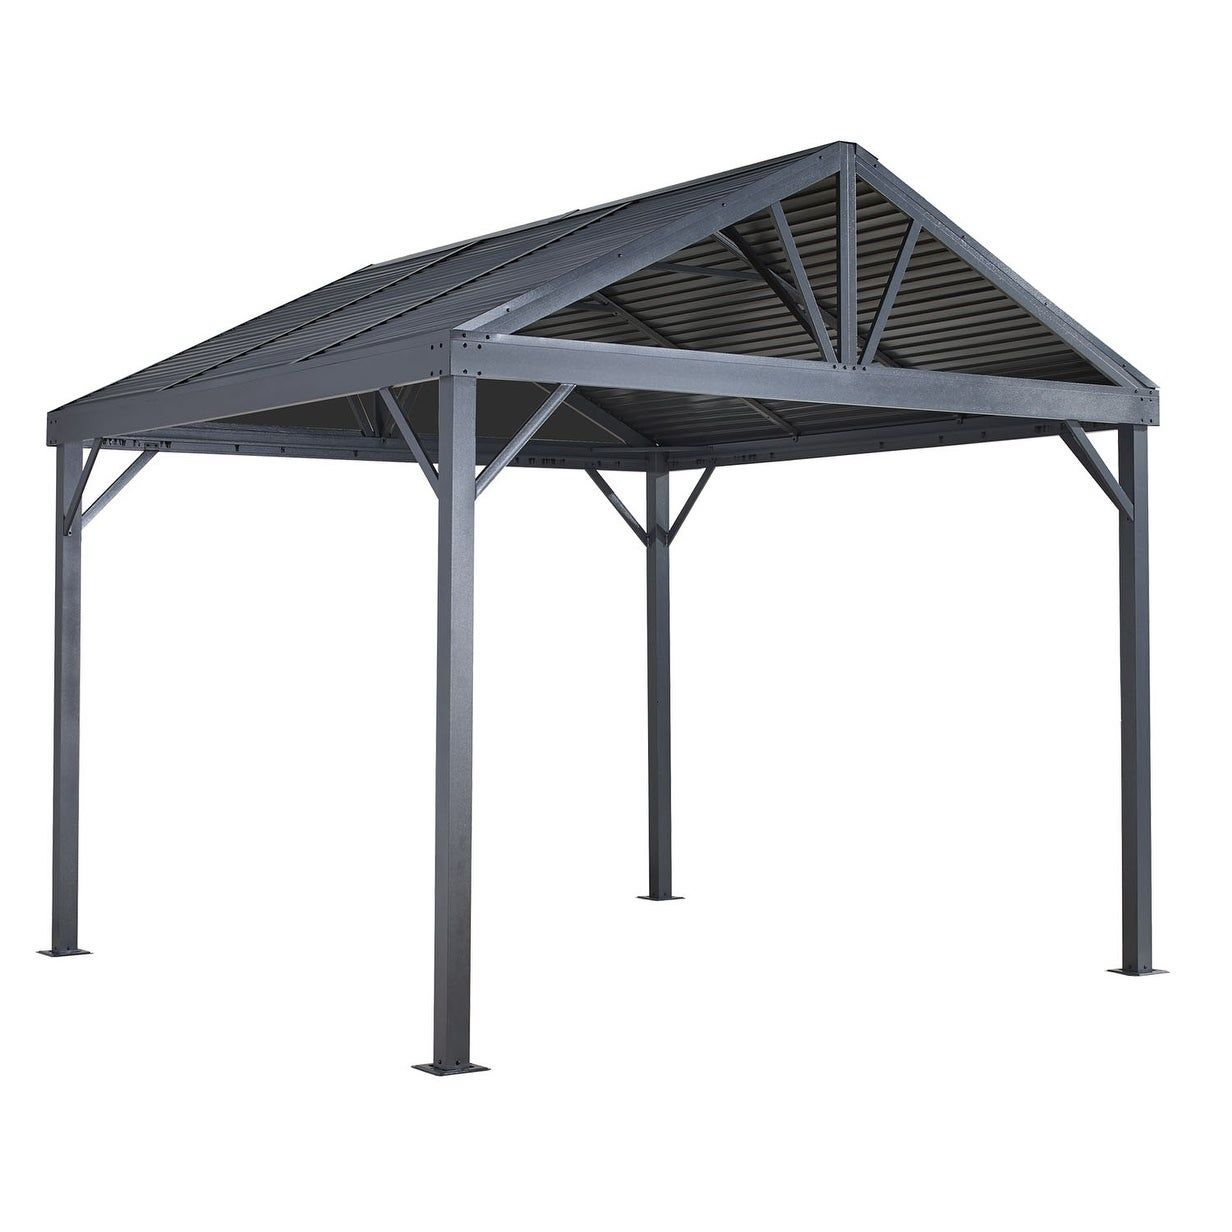 Sojag Sanibel I Outdoor Galvanized Steel And Aluminum Hardtop Gazebo 10 X 10 Ft Light Gray 500 8162837 Aluminum Gazebo Gazebo Screened Gazebo